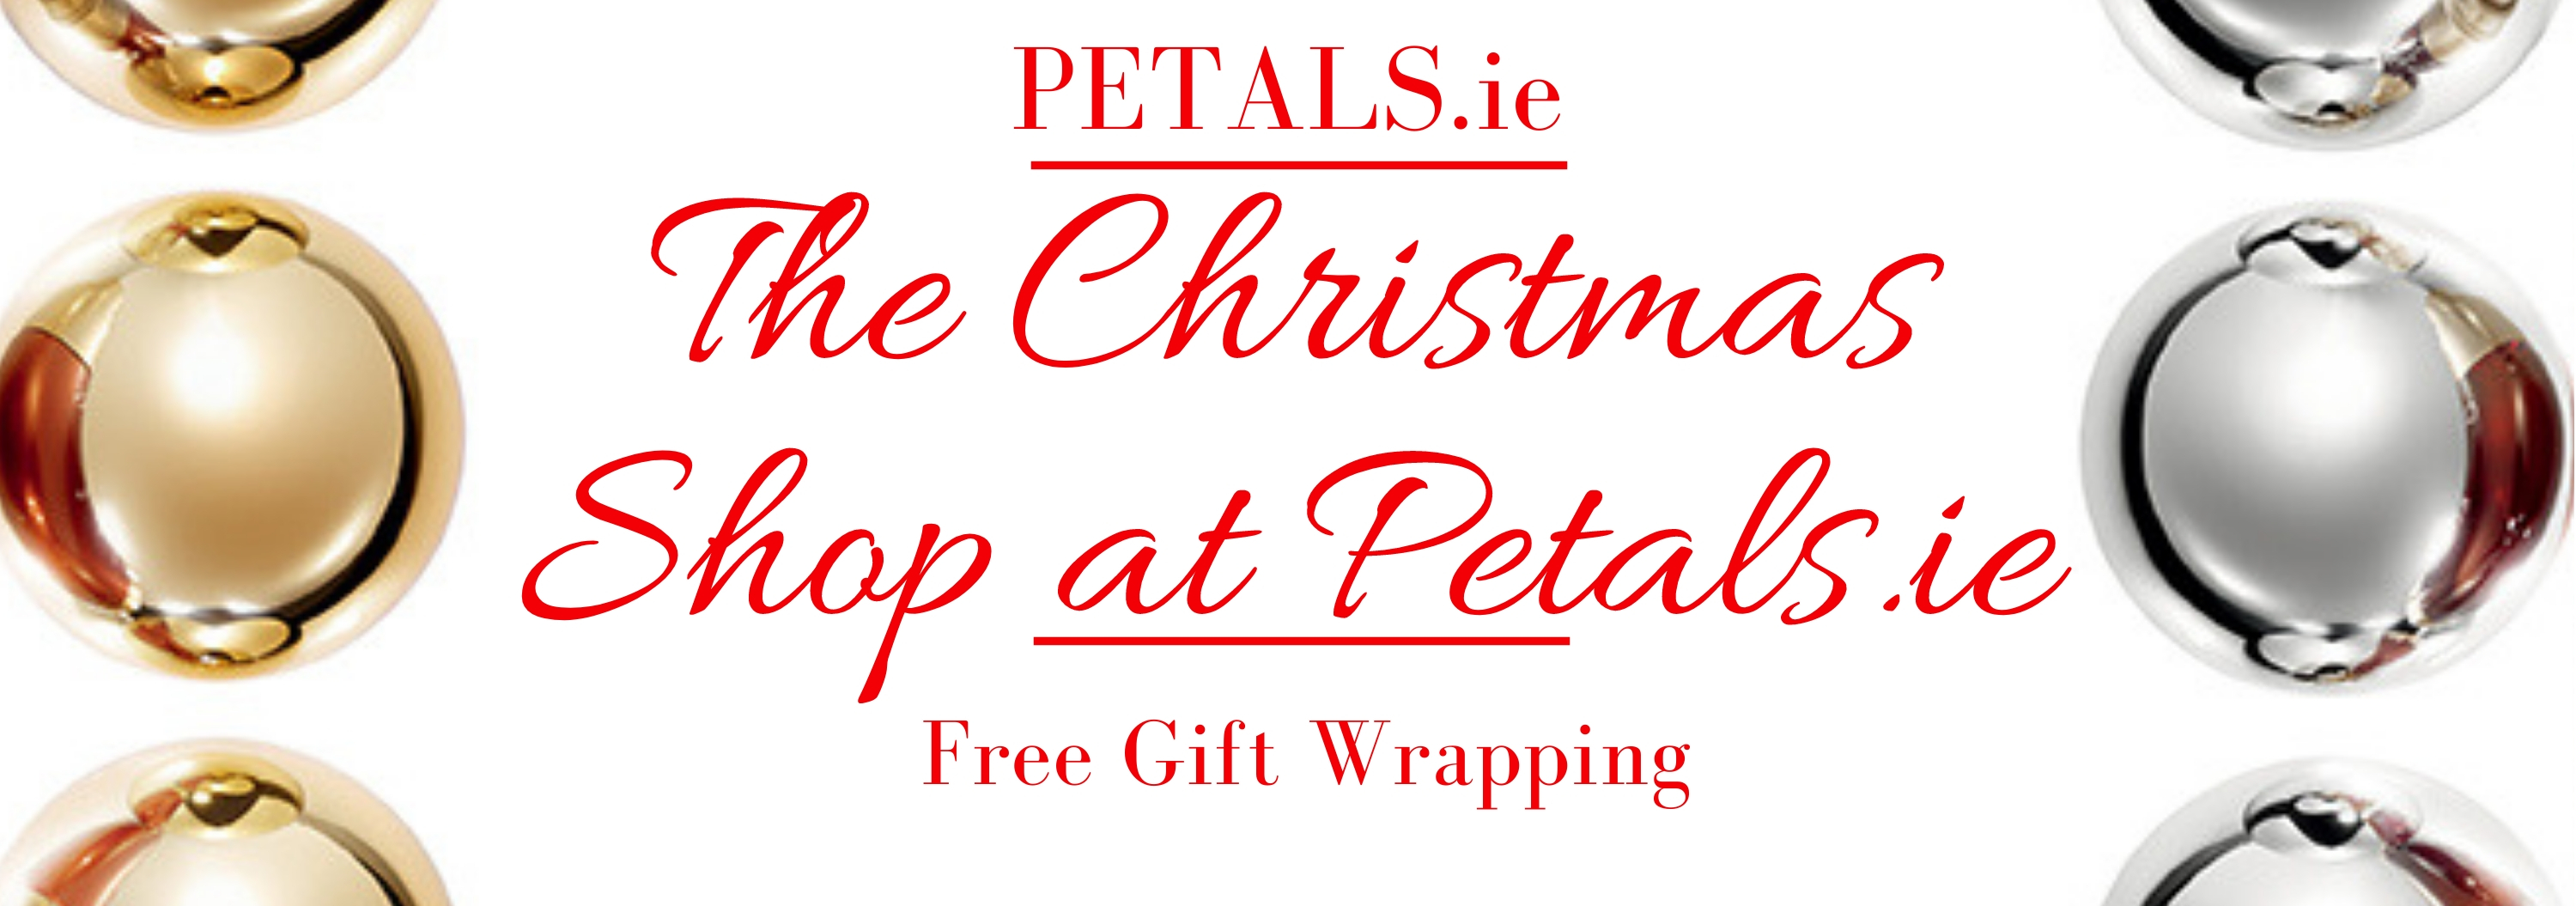 the-christmas-shop-at-petals.ie.jpg